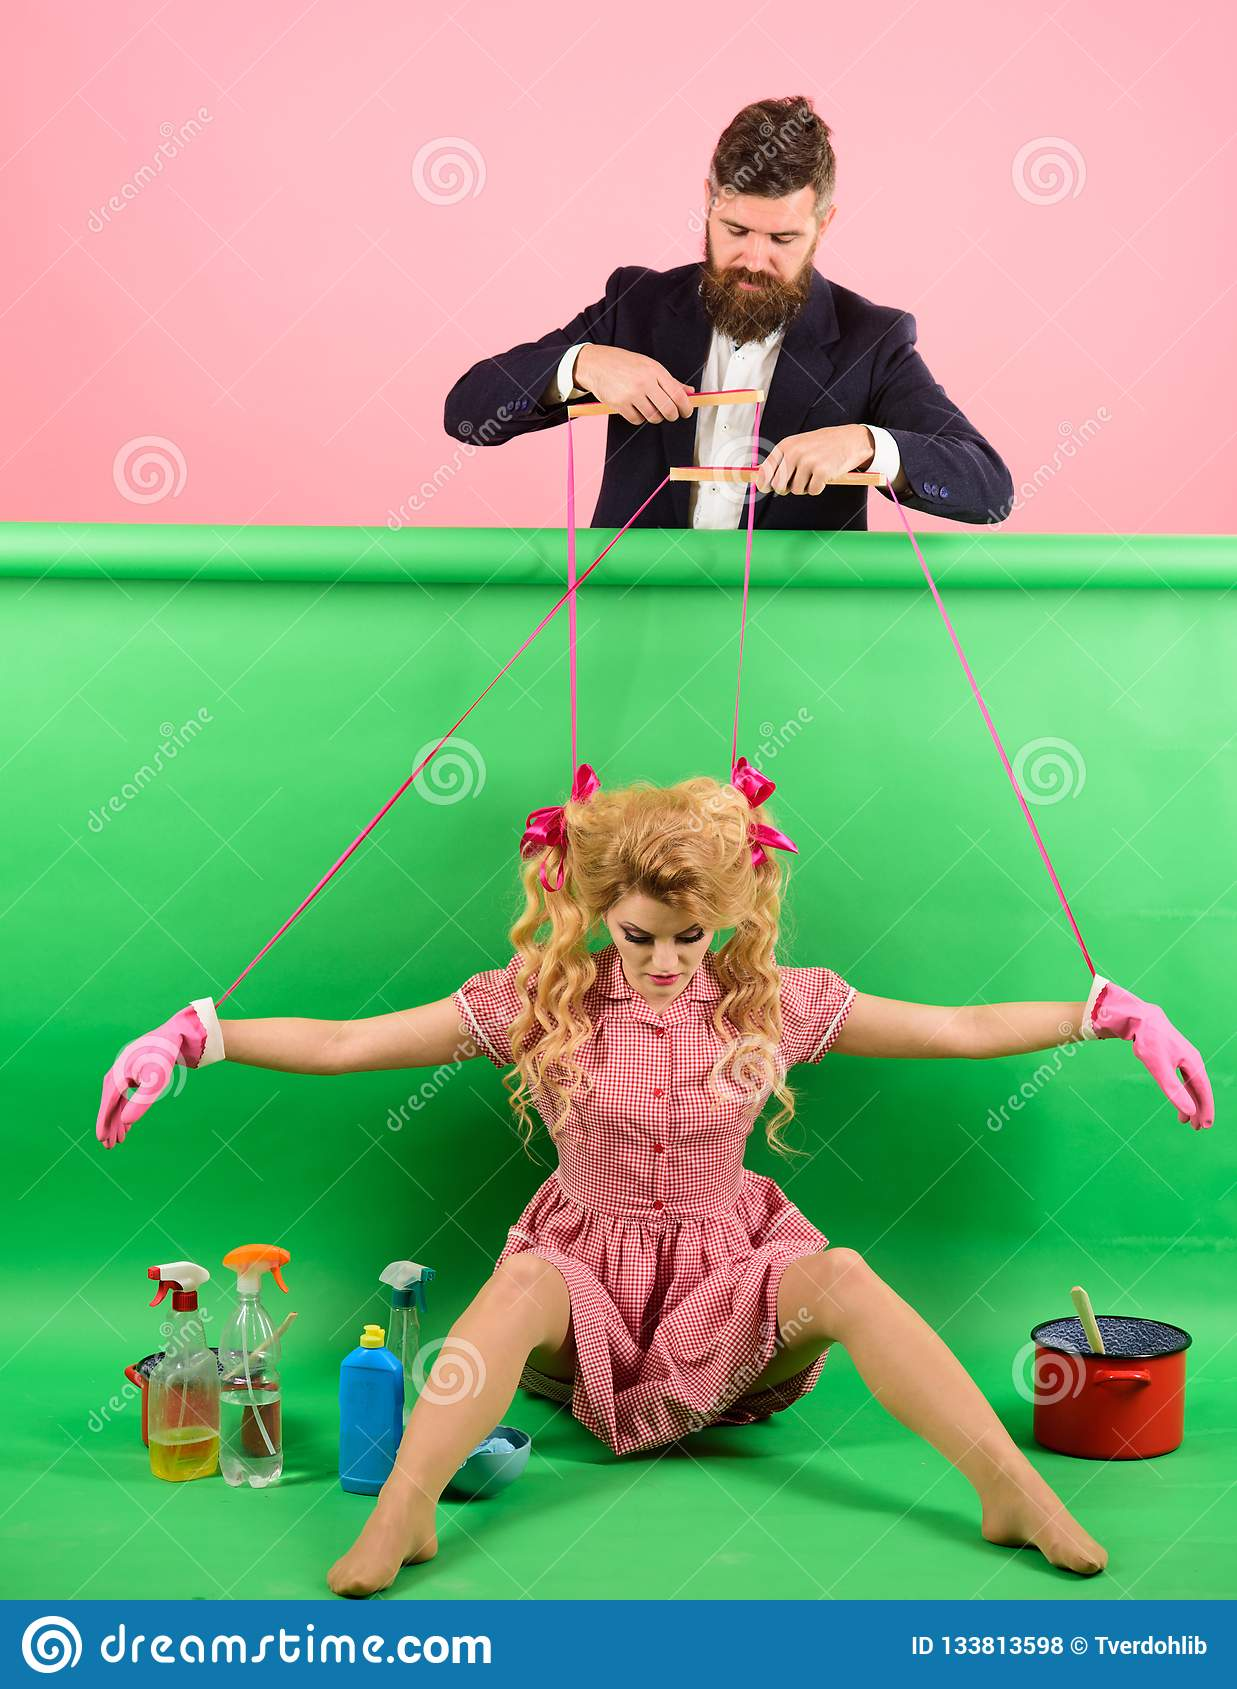 Retro girls and master at party. holidays and doll. dominance and dependence. Housewife. Creative idea. Love. vintage